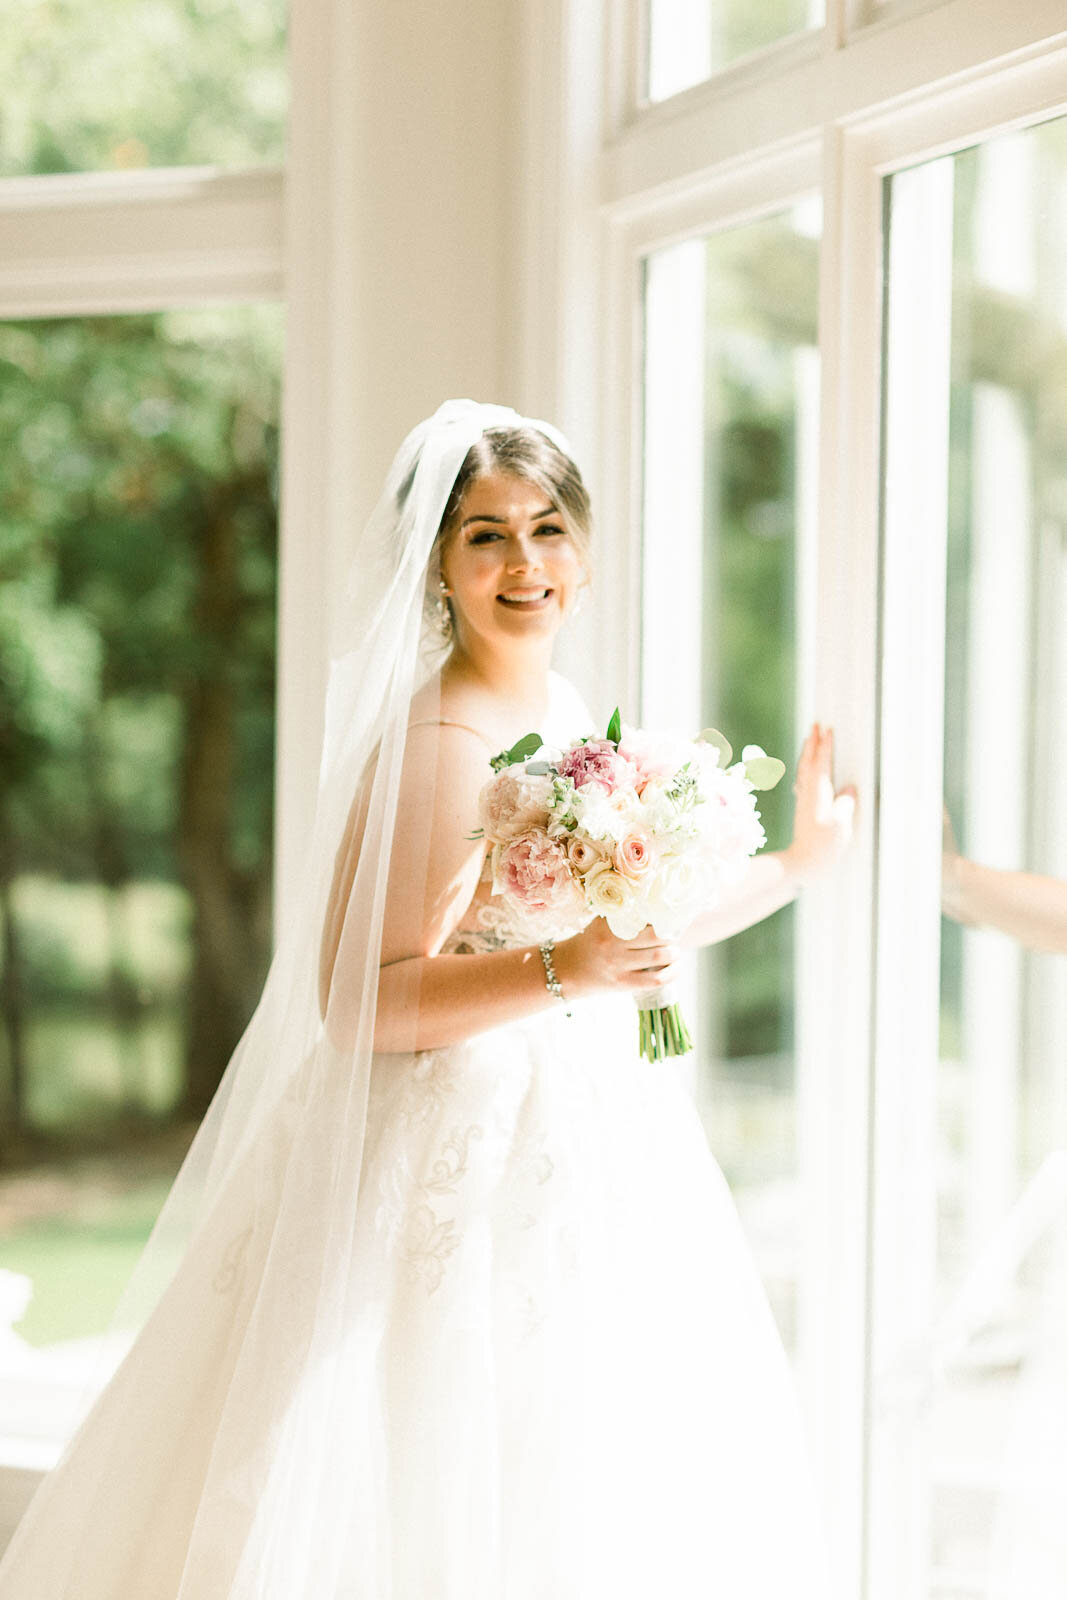 Glowing Bride on Her Wedding Day, Mississippi